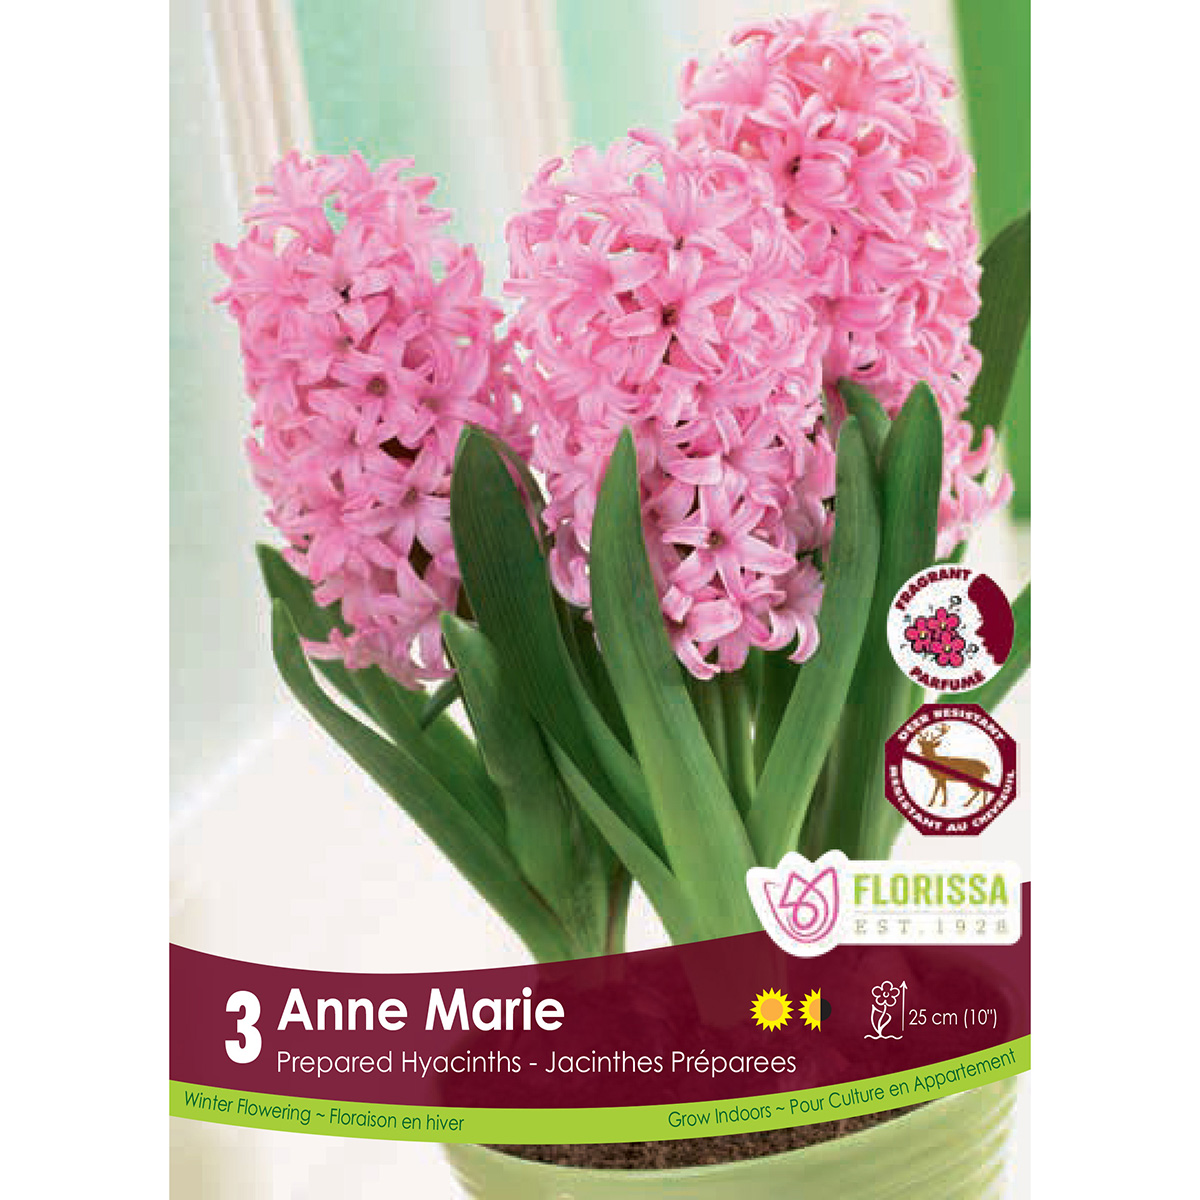 Prepared Hyacinth 'Anne Marie' Bulbs 3Pk